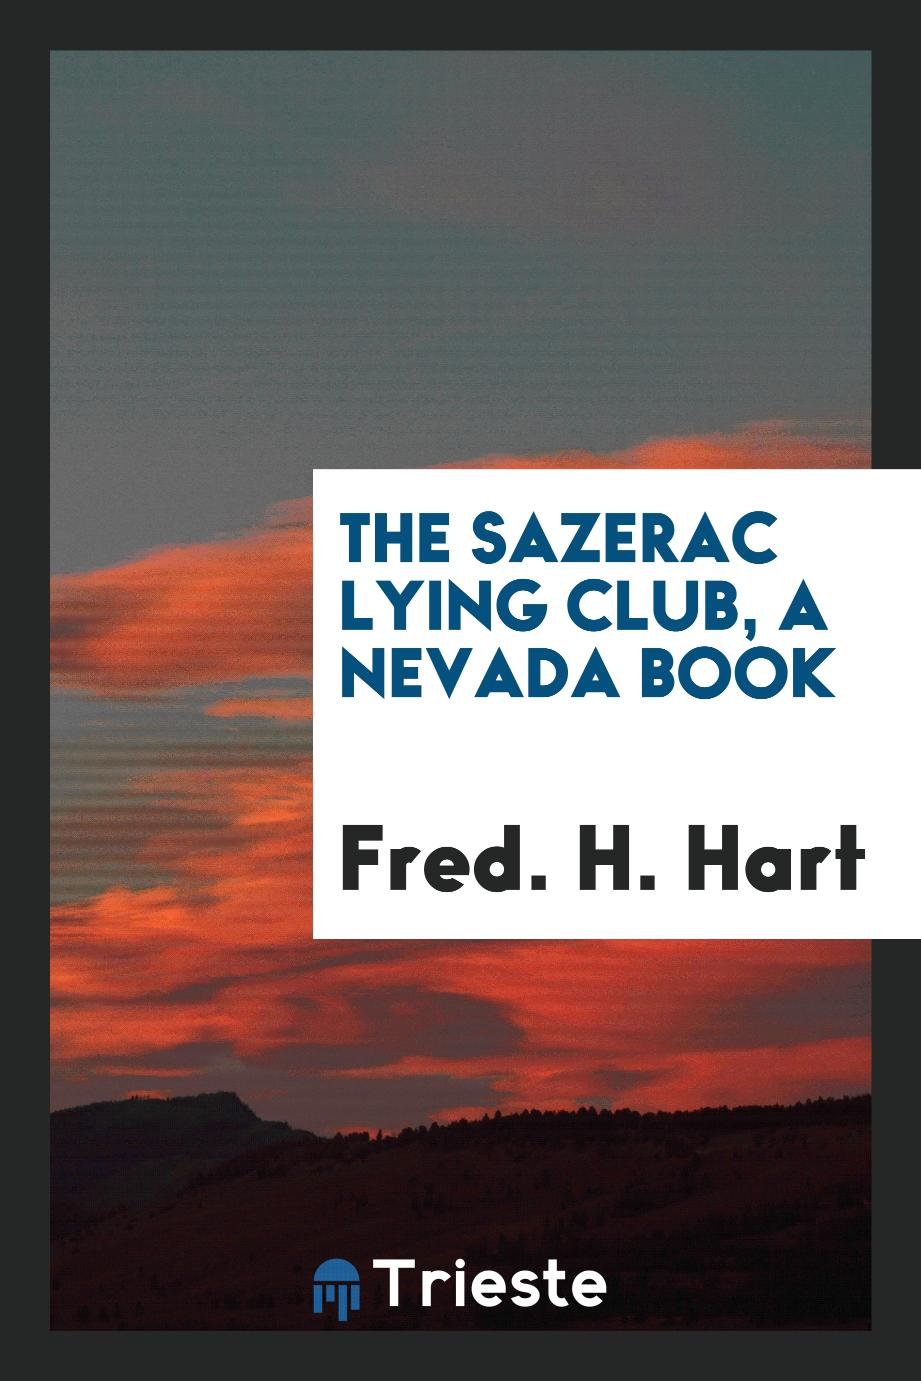 The Sazerac lying club, A Nevada book